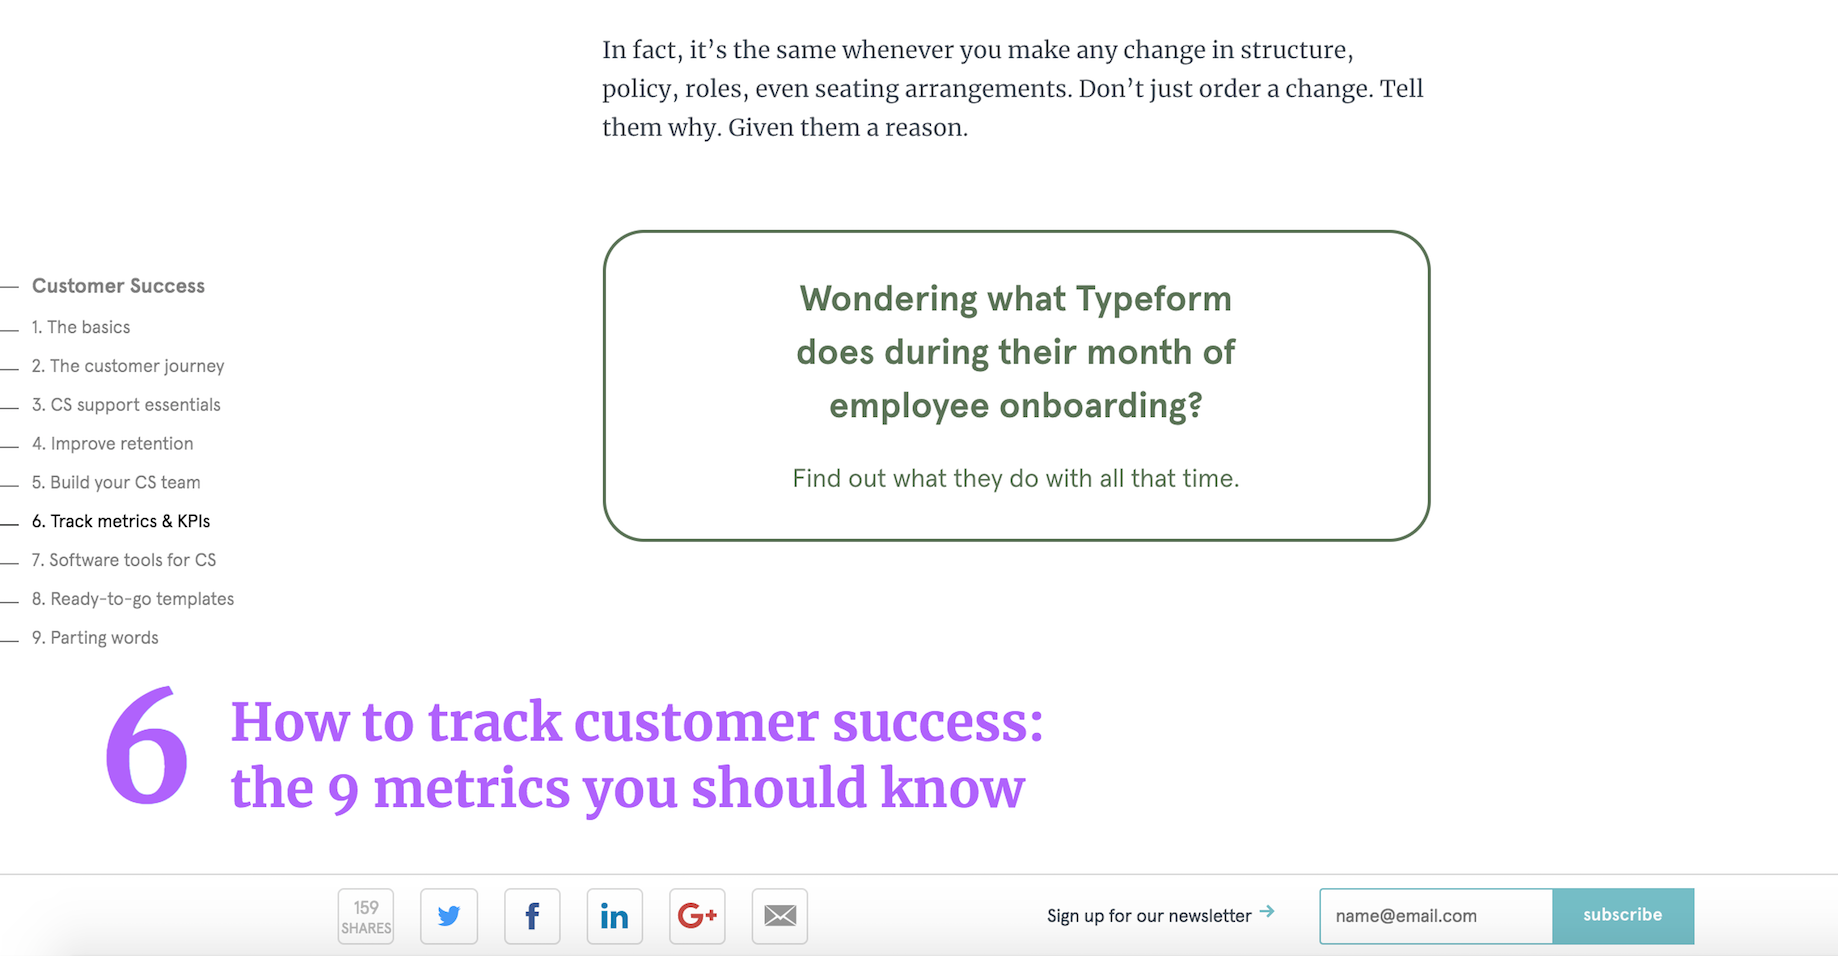 conversion-path-2-typeform-example-topic-clusters